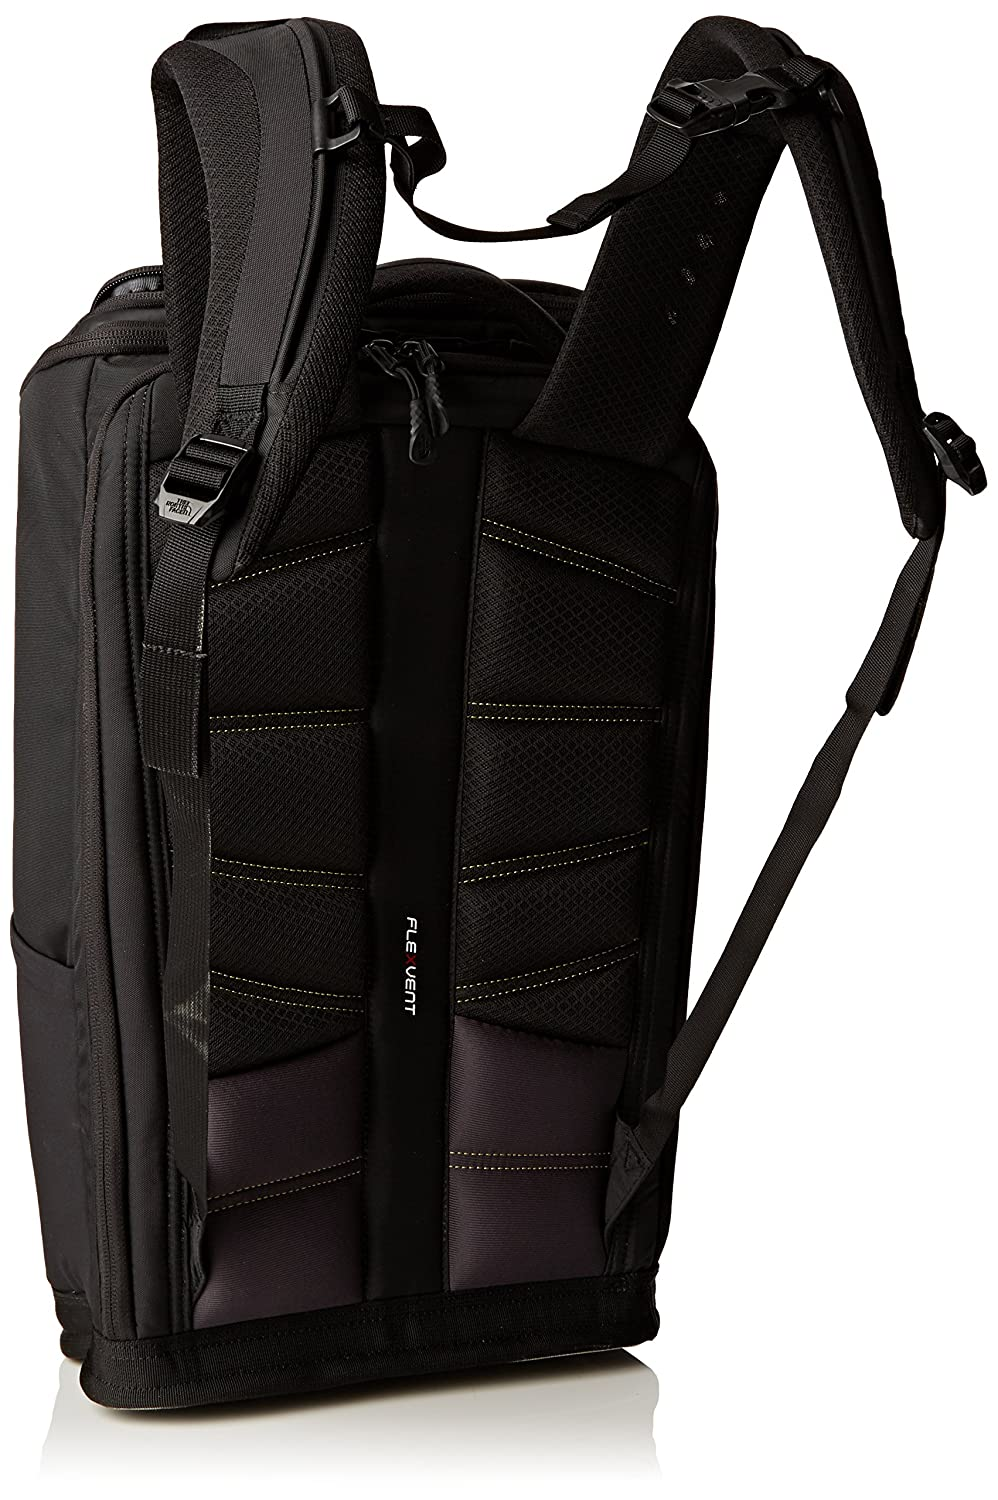 91zfUPZNt4L._UL1500_ amazon com the north face fuse box charged backpack, tnf black north face fuse box backpack at n-0.co